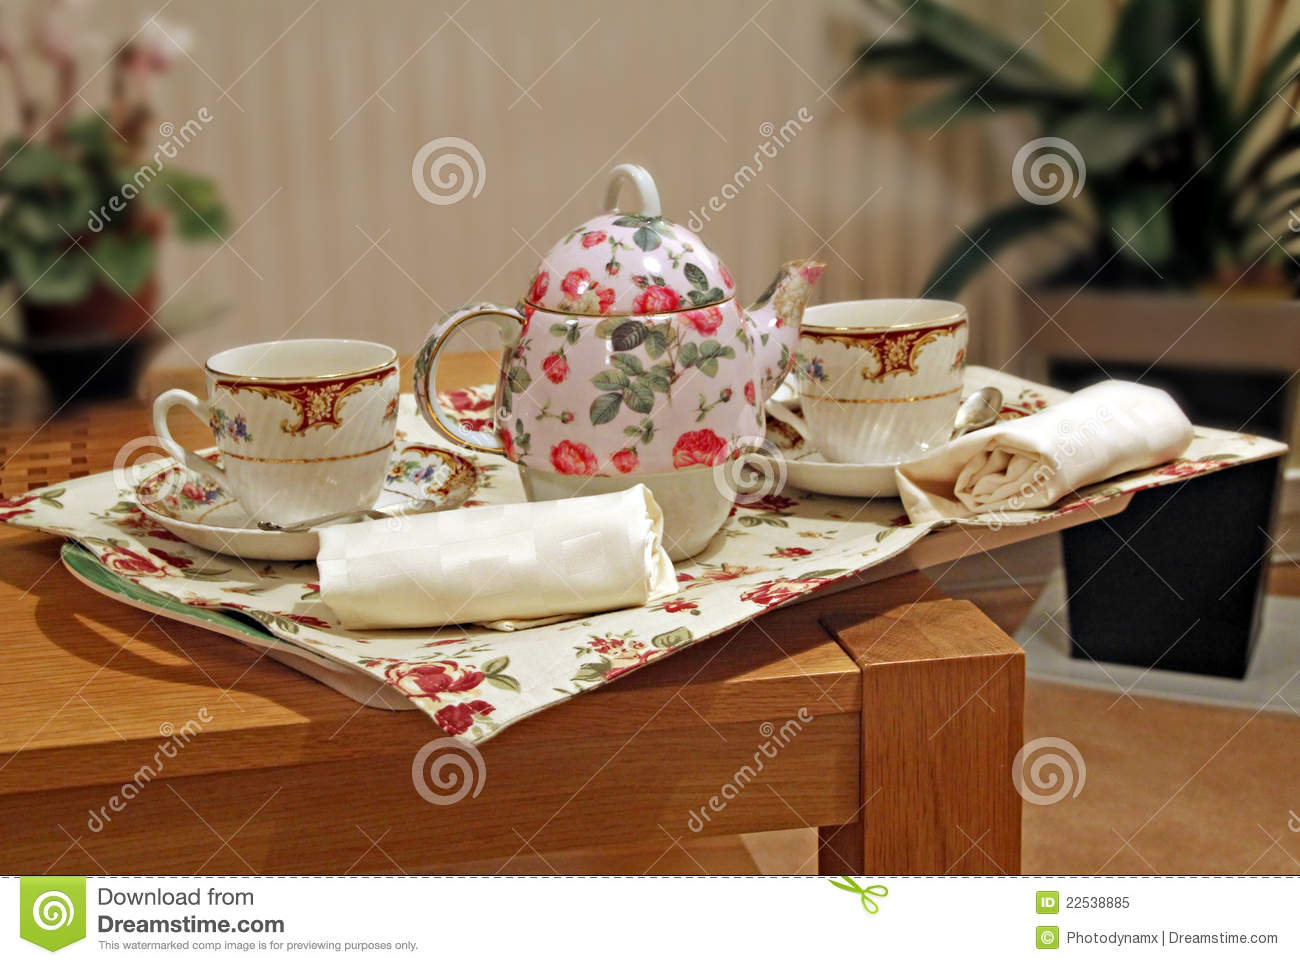 Room Service: Room Service Tea Tray Stock Image. Image Of Afternoon